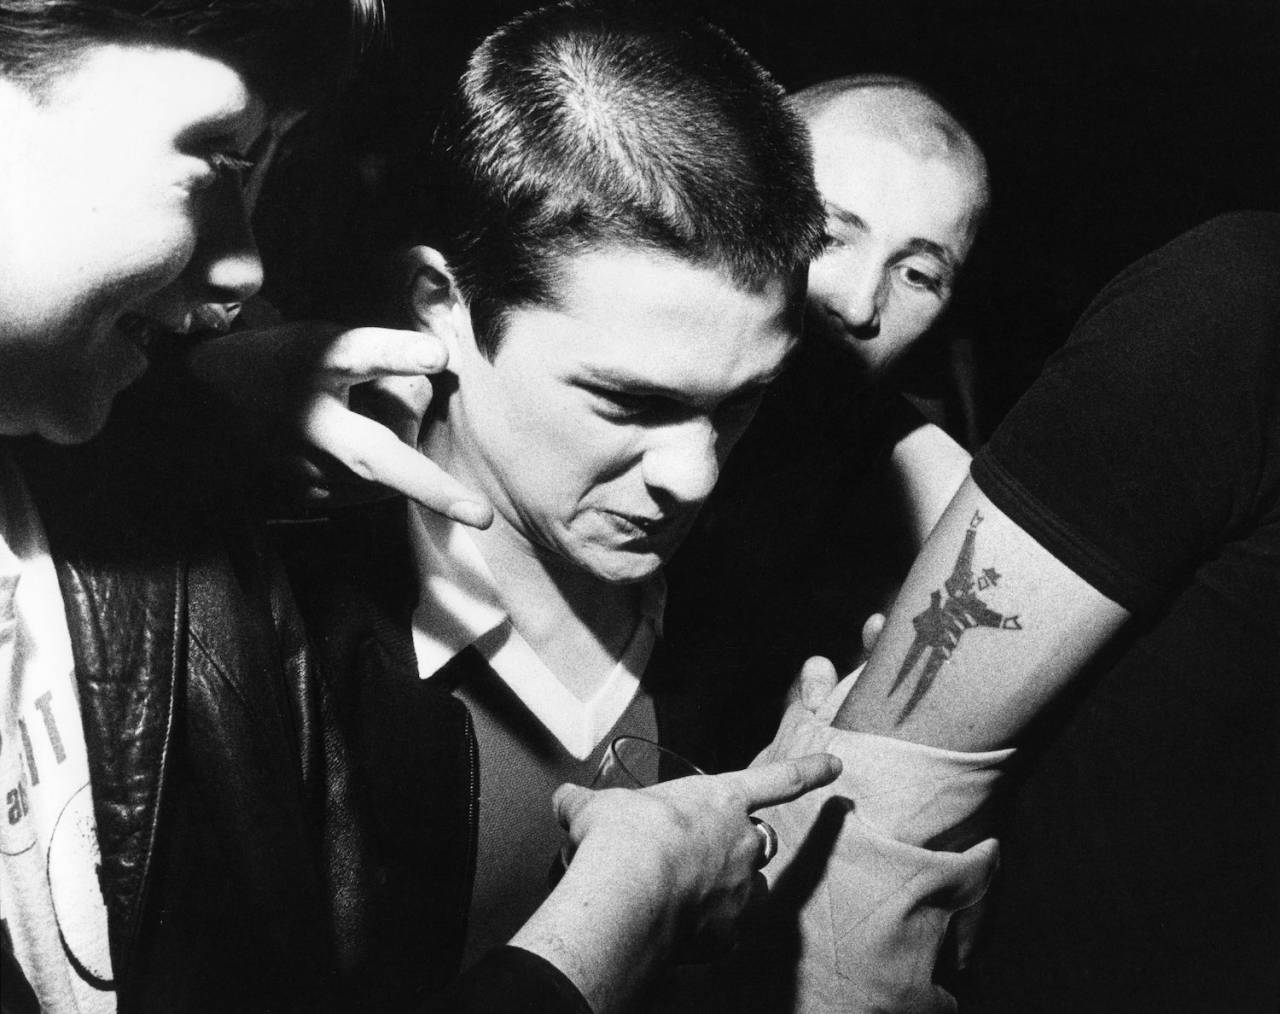 Skinheads pointing at a 2Tone Body Snatchers, tattoo, at a gig, UK 1980